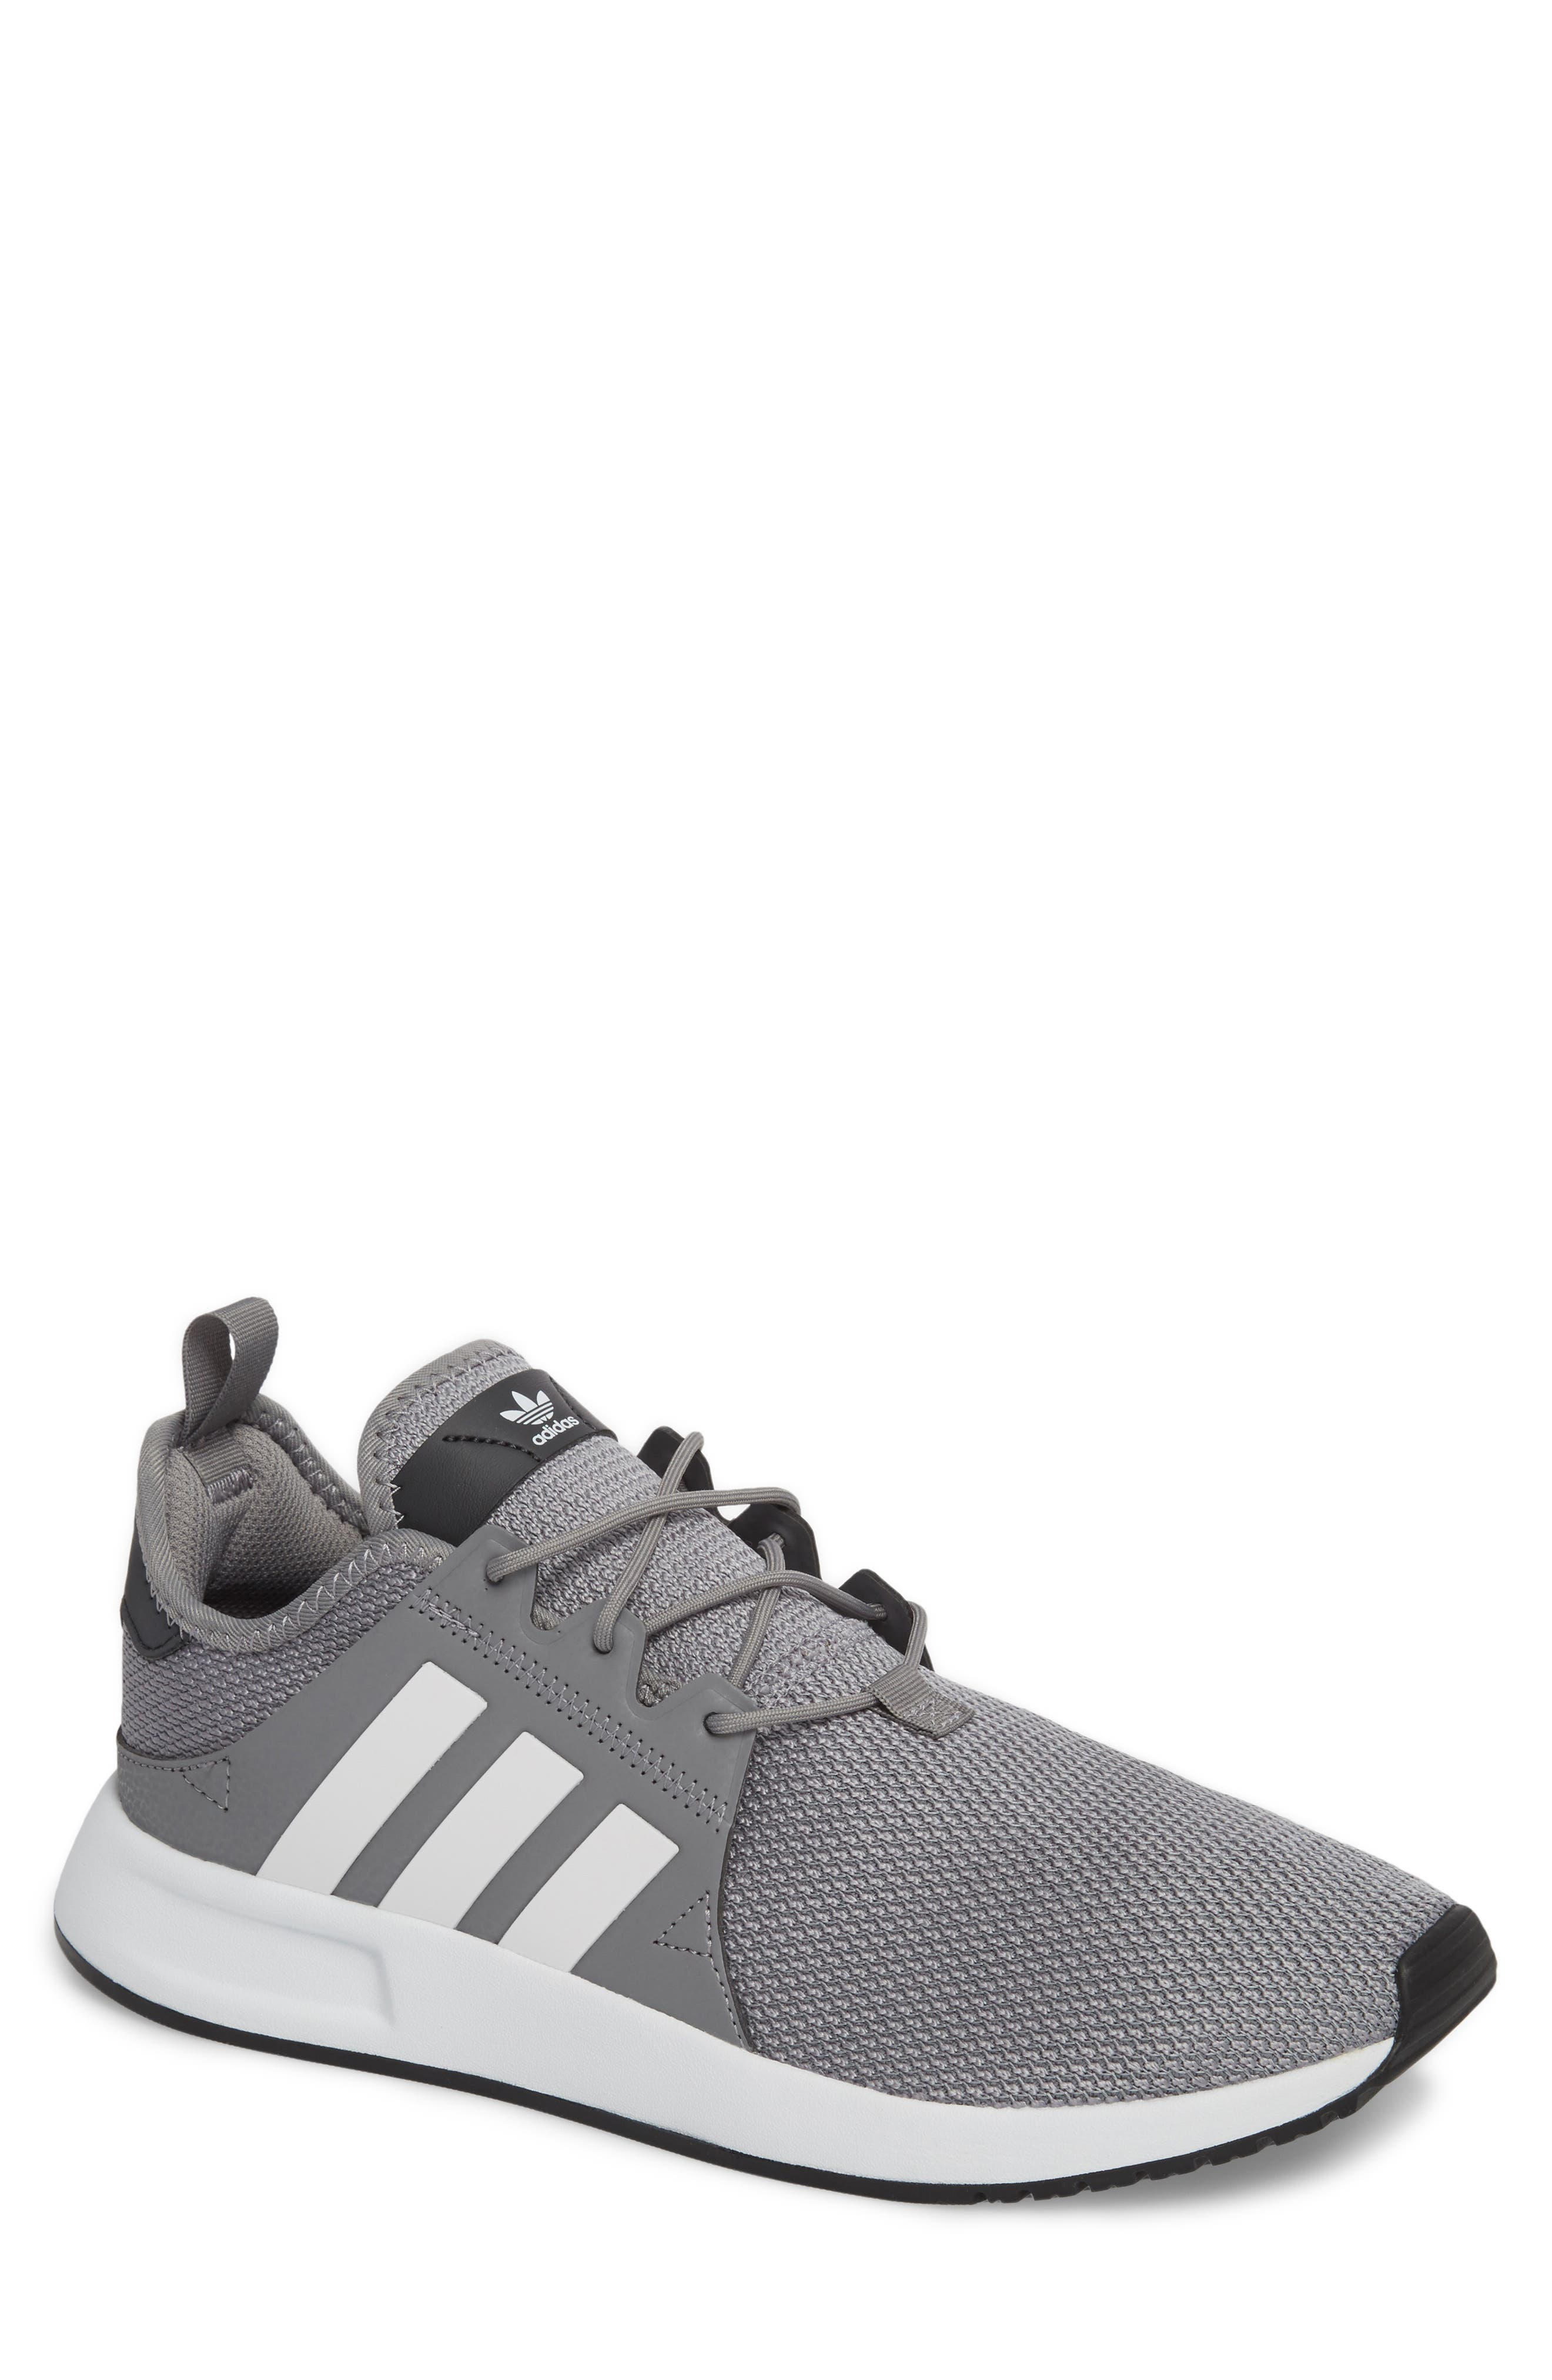 X_PLR Sneaker,                             Main thumbnail 1, color,                             Grey/ White/ Carbon